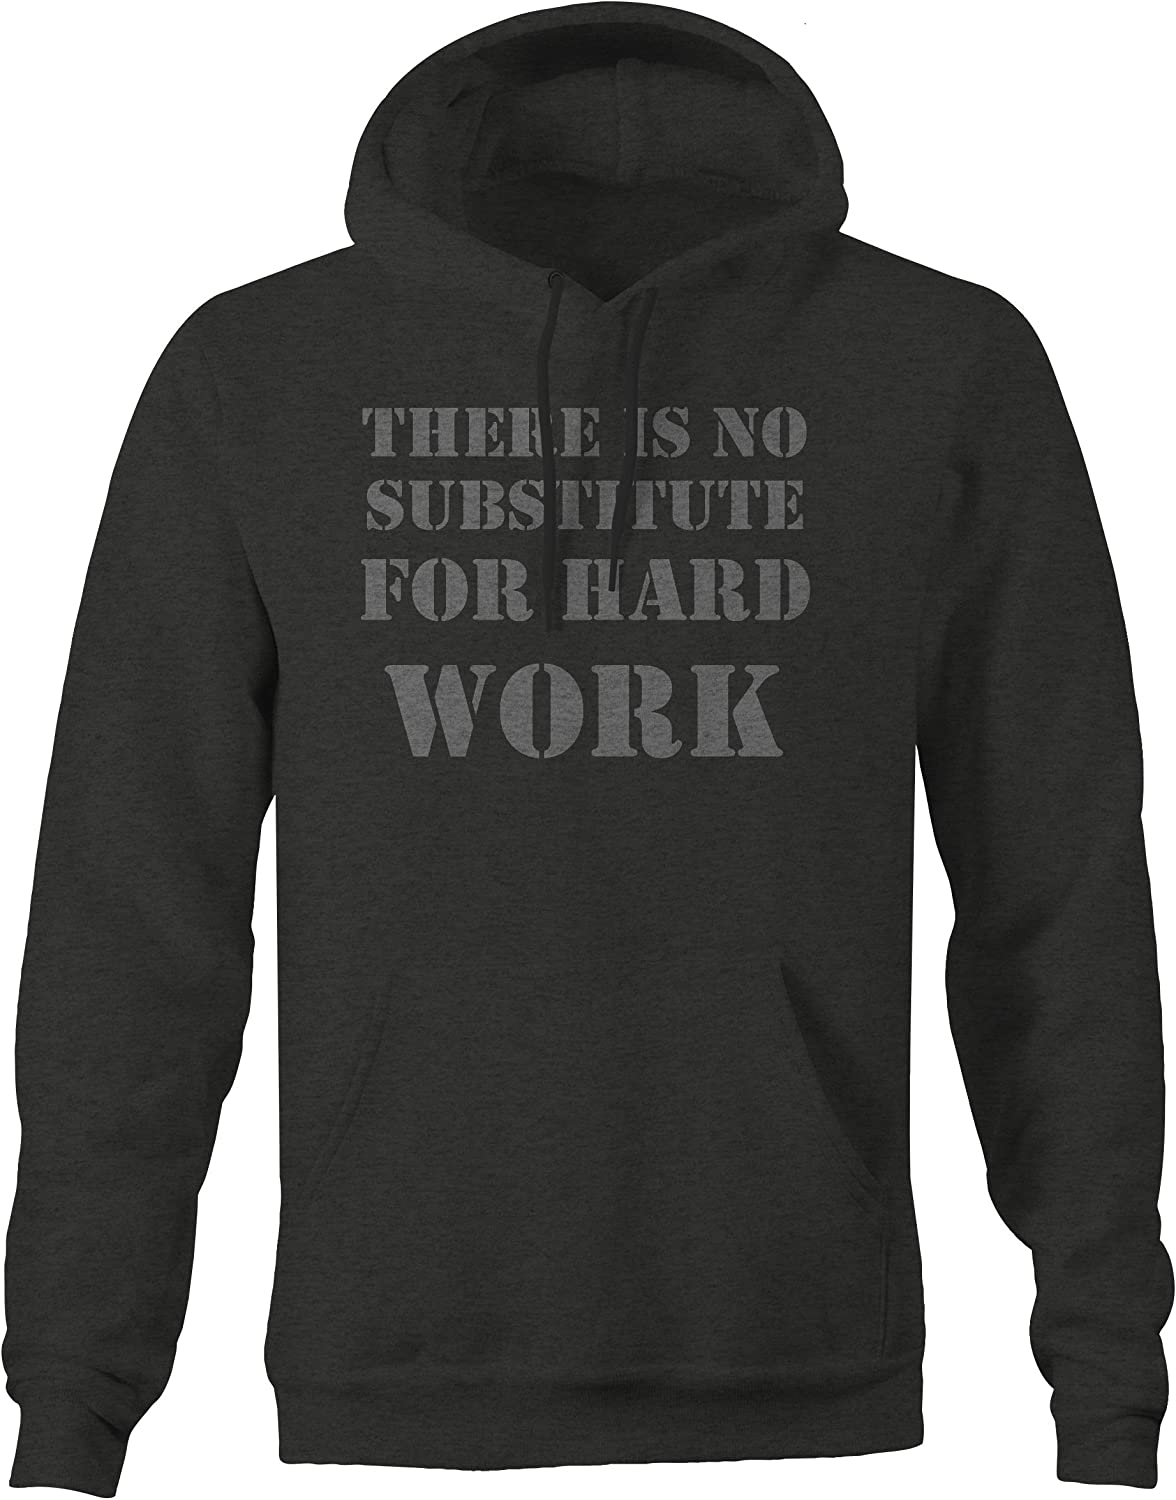 There is No Substitute for Hard Work American Gym Sweatshirt